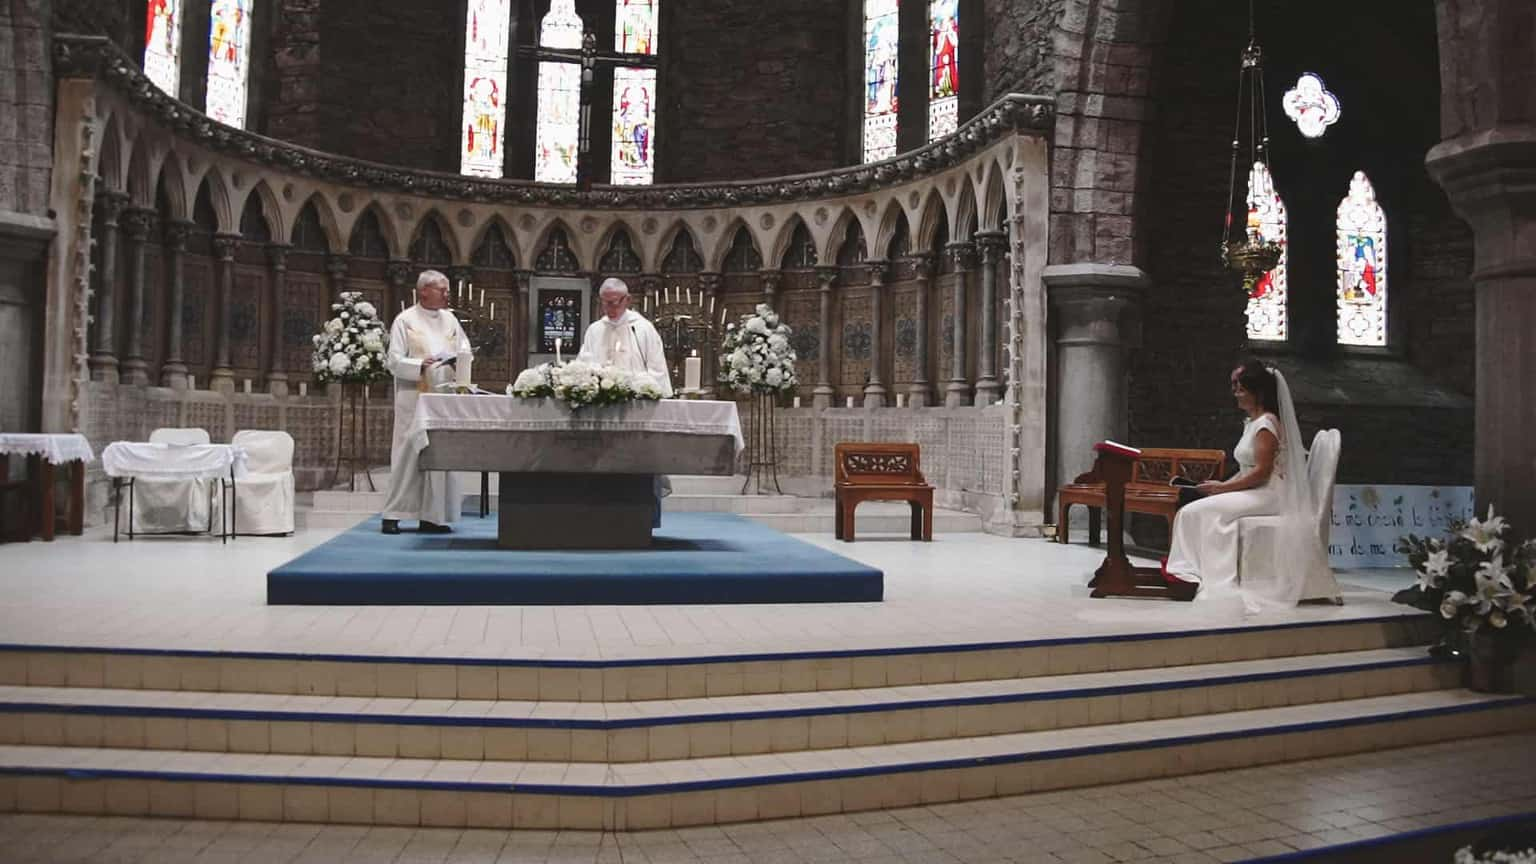 Priest at the altar looking down.